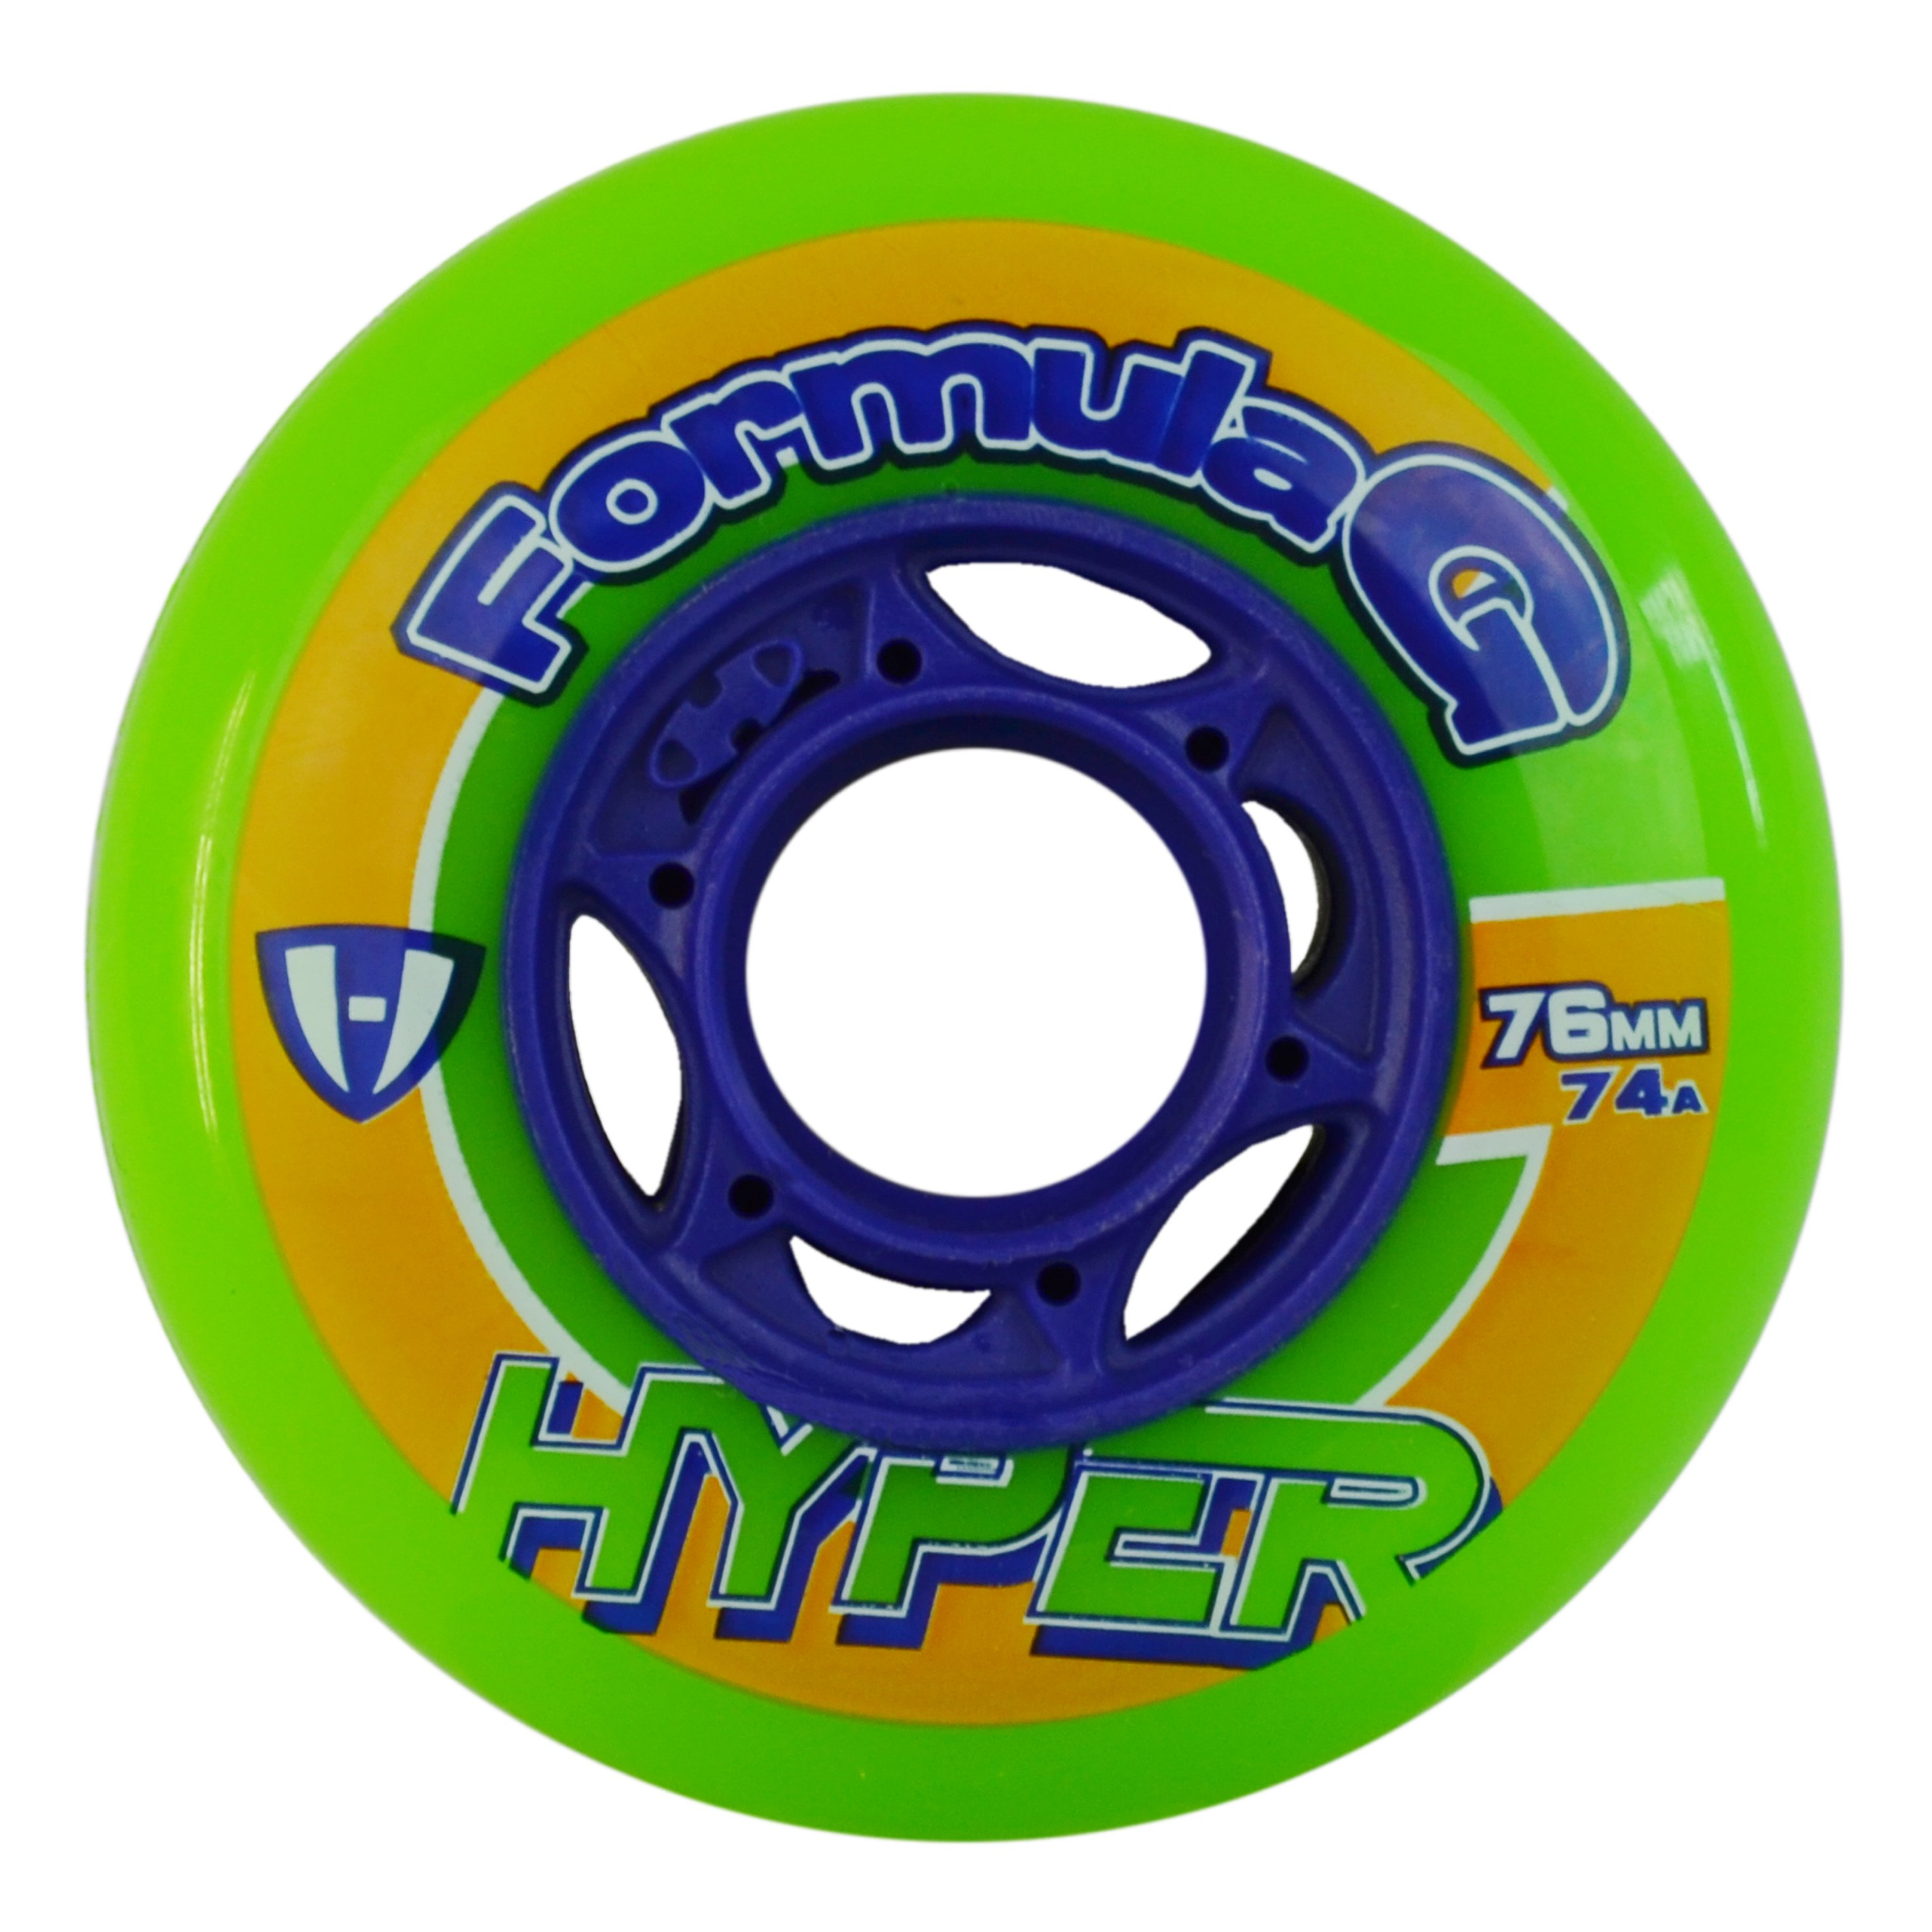 HYPER - FORMULA G ERA GREEN 80 / 76 / 72 / 68mm  74A